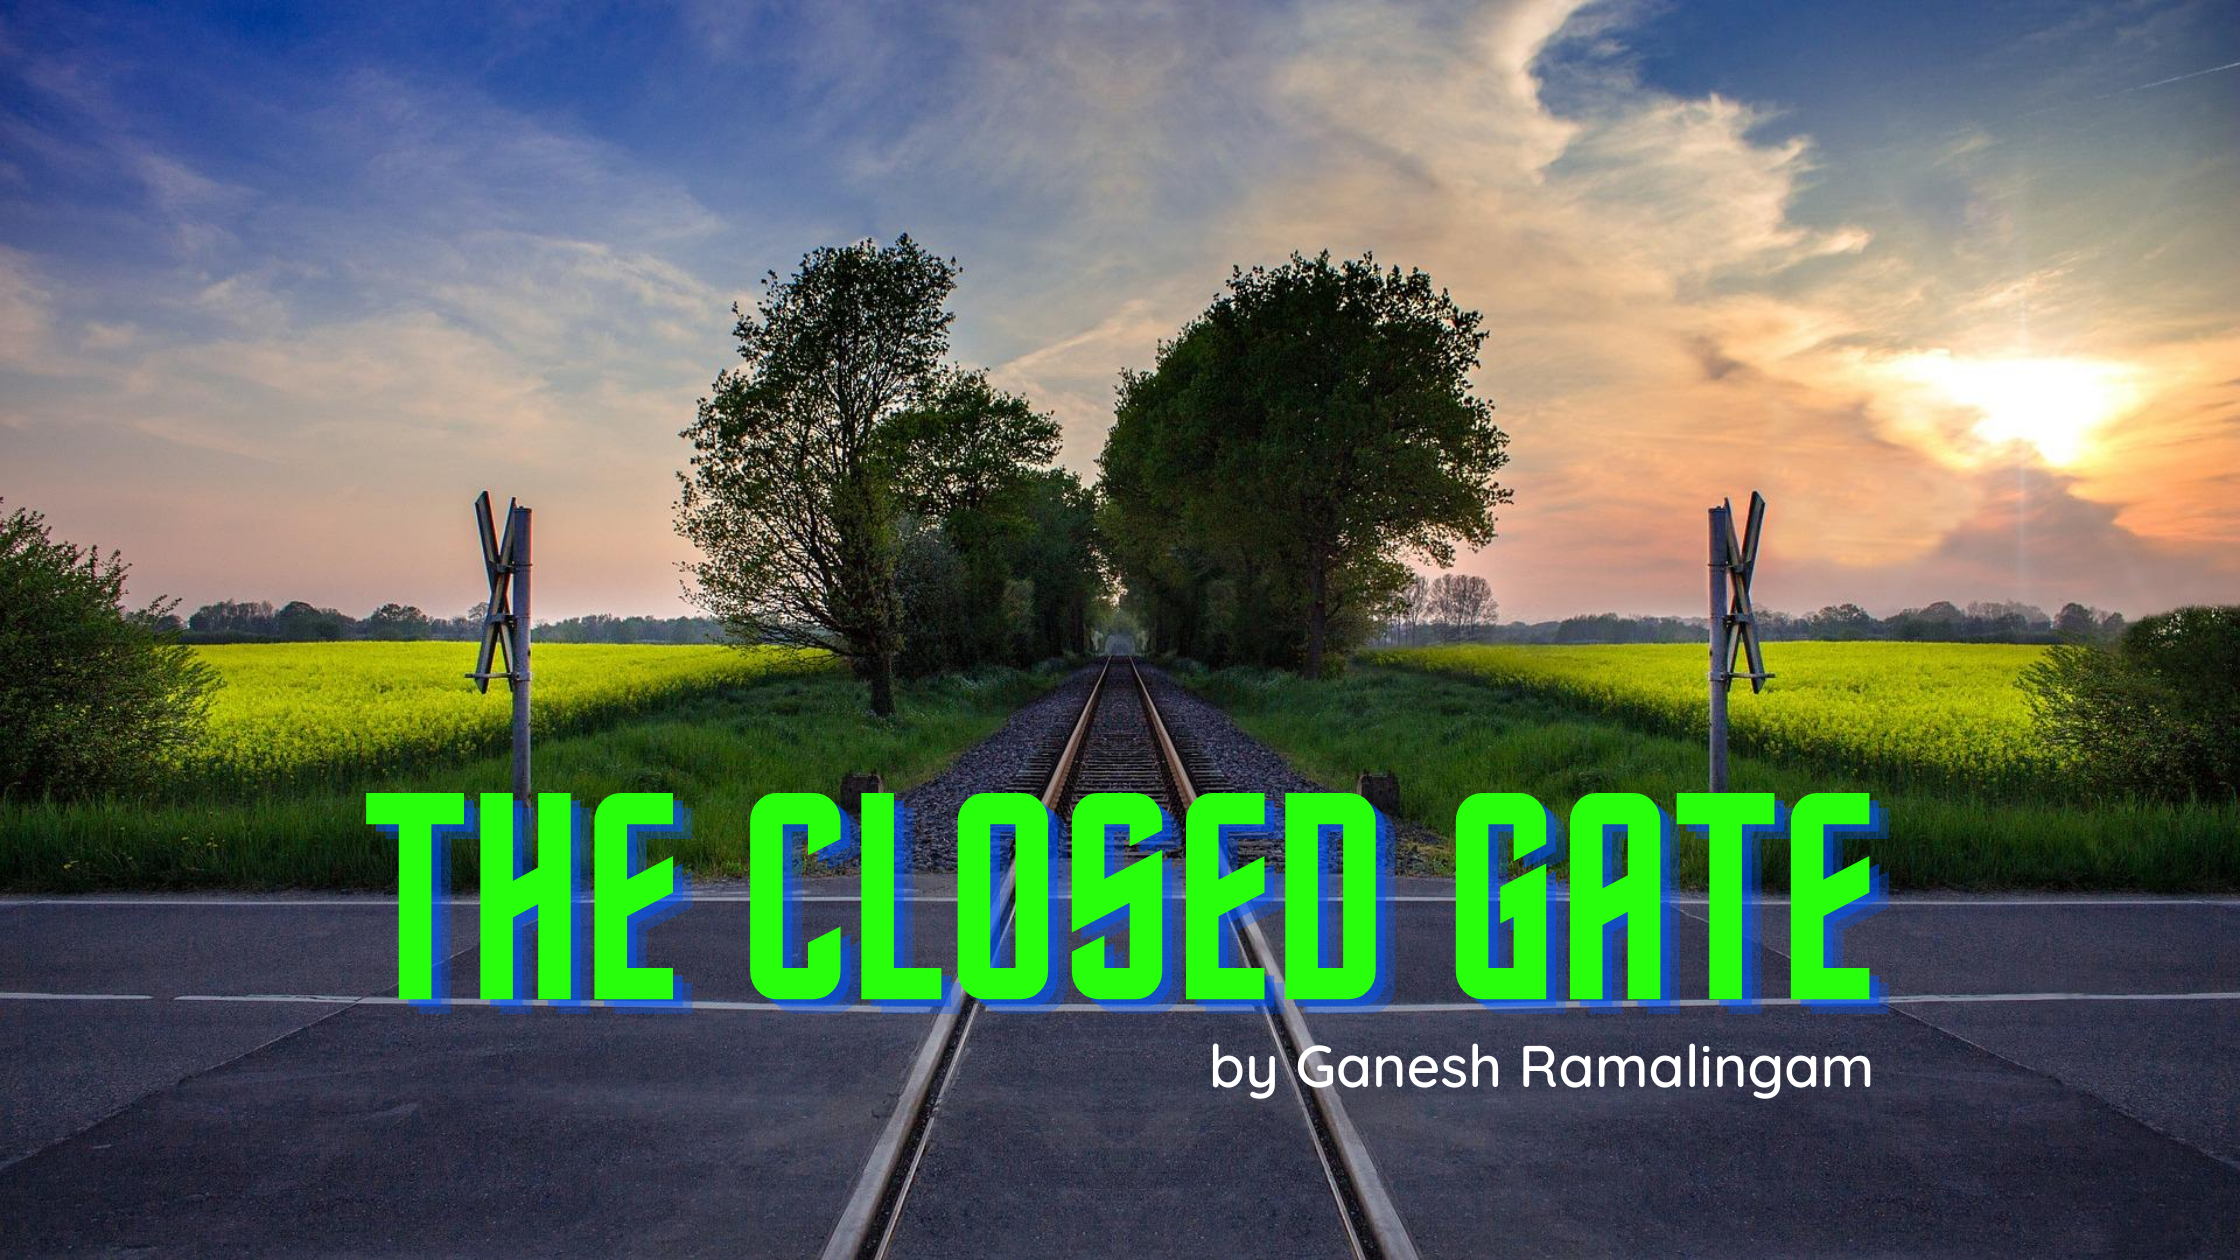 The Closed Gate